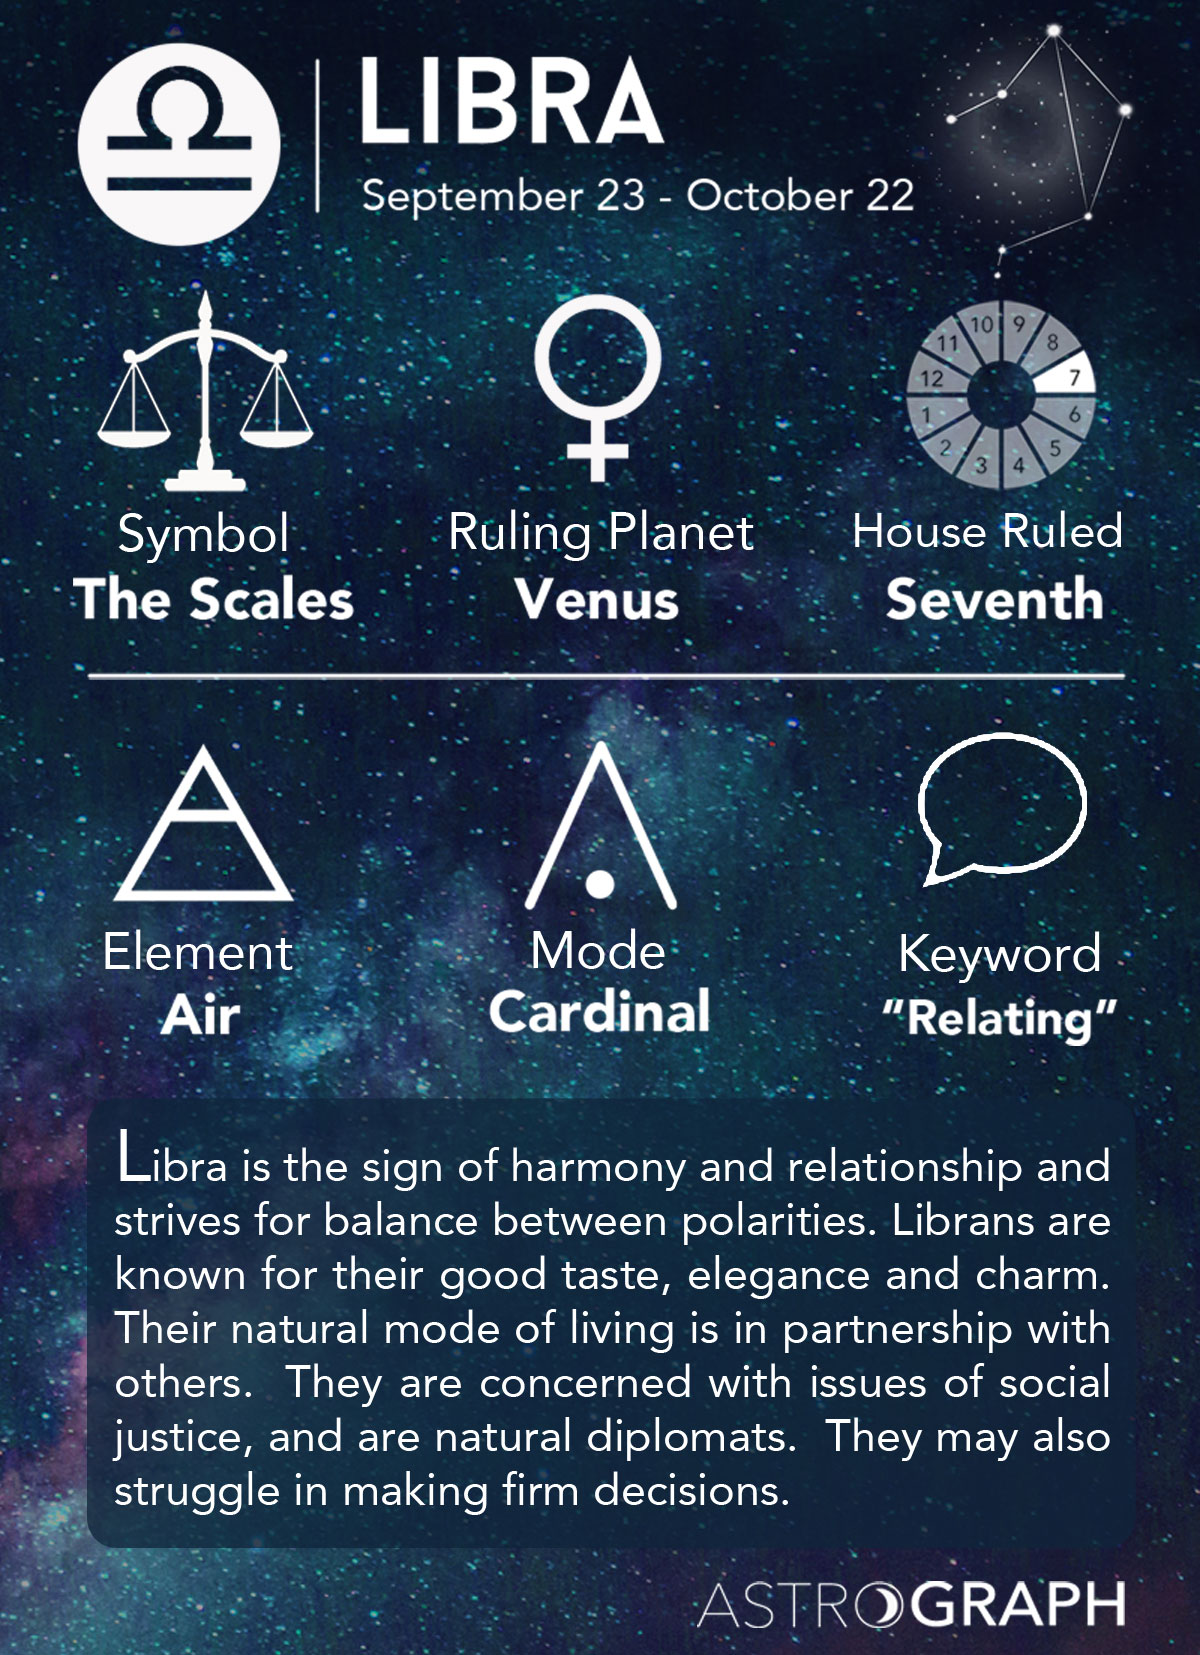 libra sign in astrology zodiac sun sign in action